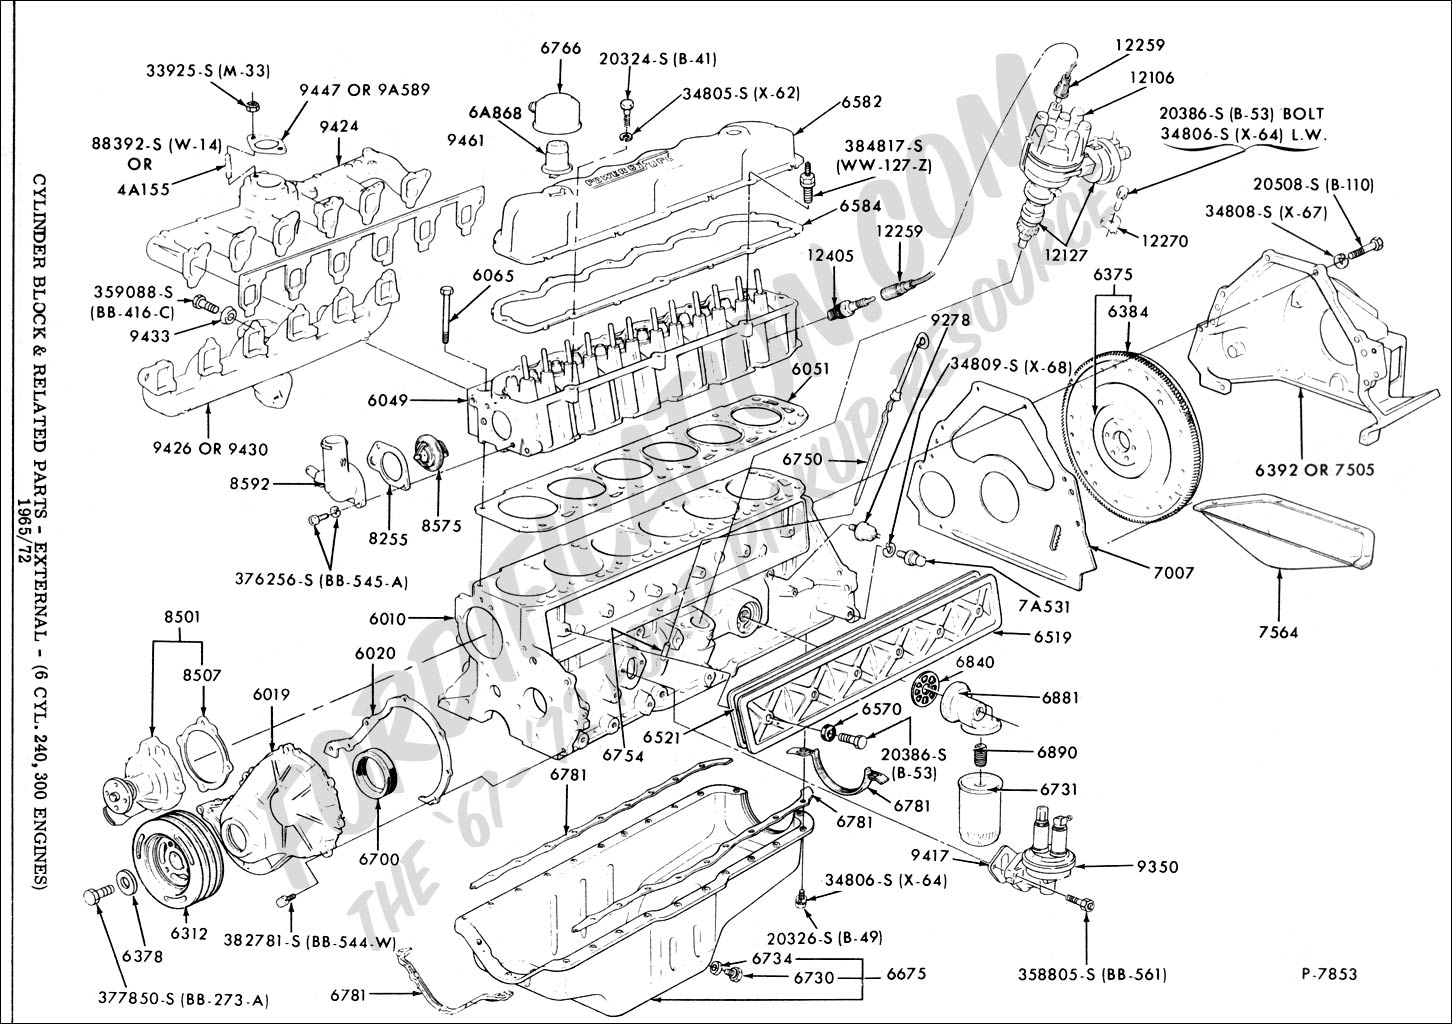 hight resolution of 2005 ford f250 engine diagram wiring diagram for you rh 10 8 4 carrera rennwelt de 6 4 powerstroke turbo diagram ford 6 0 powerstroke diagram